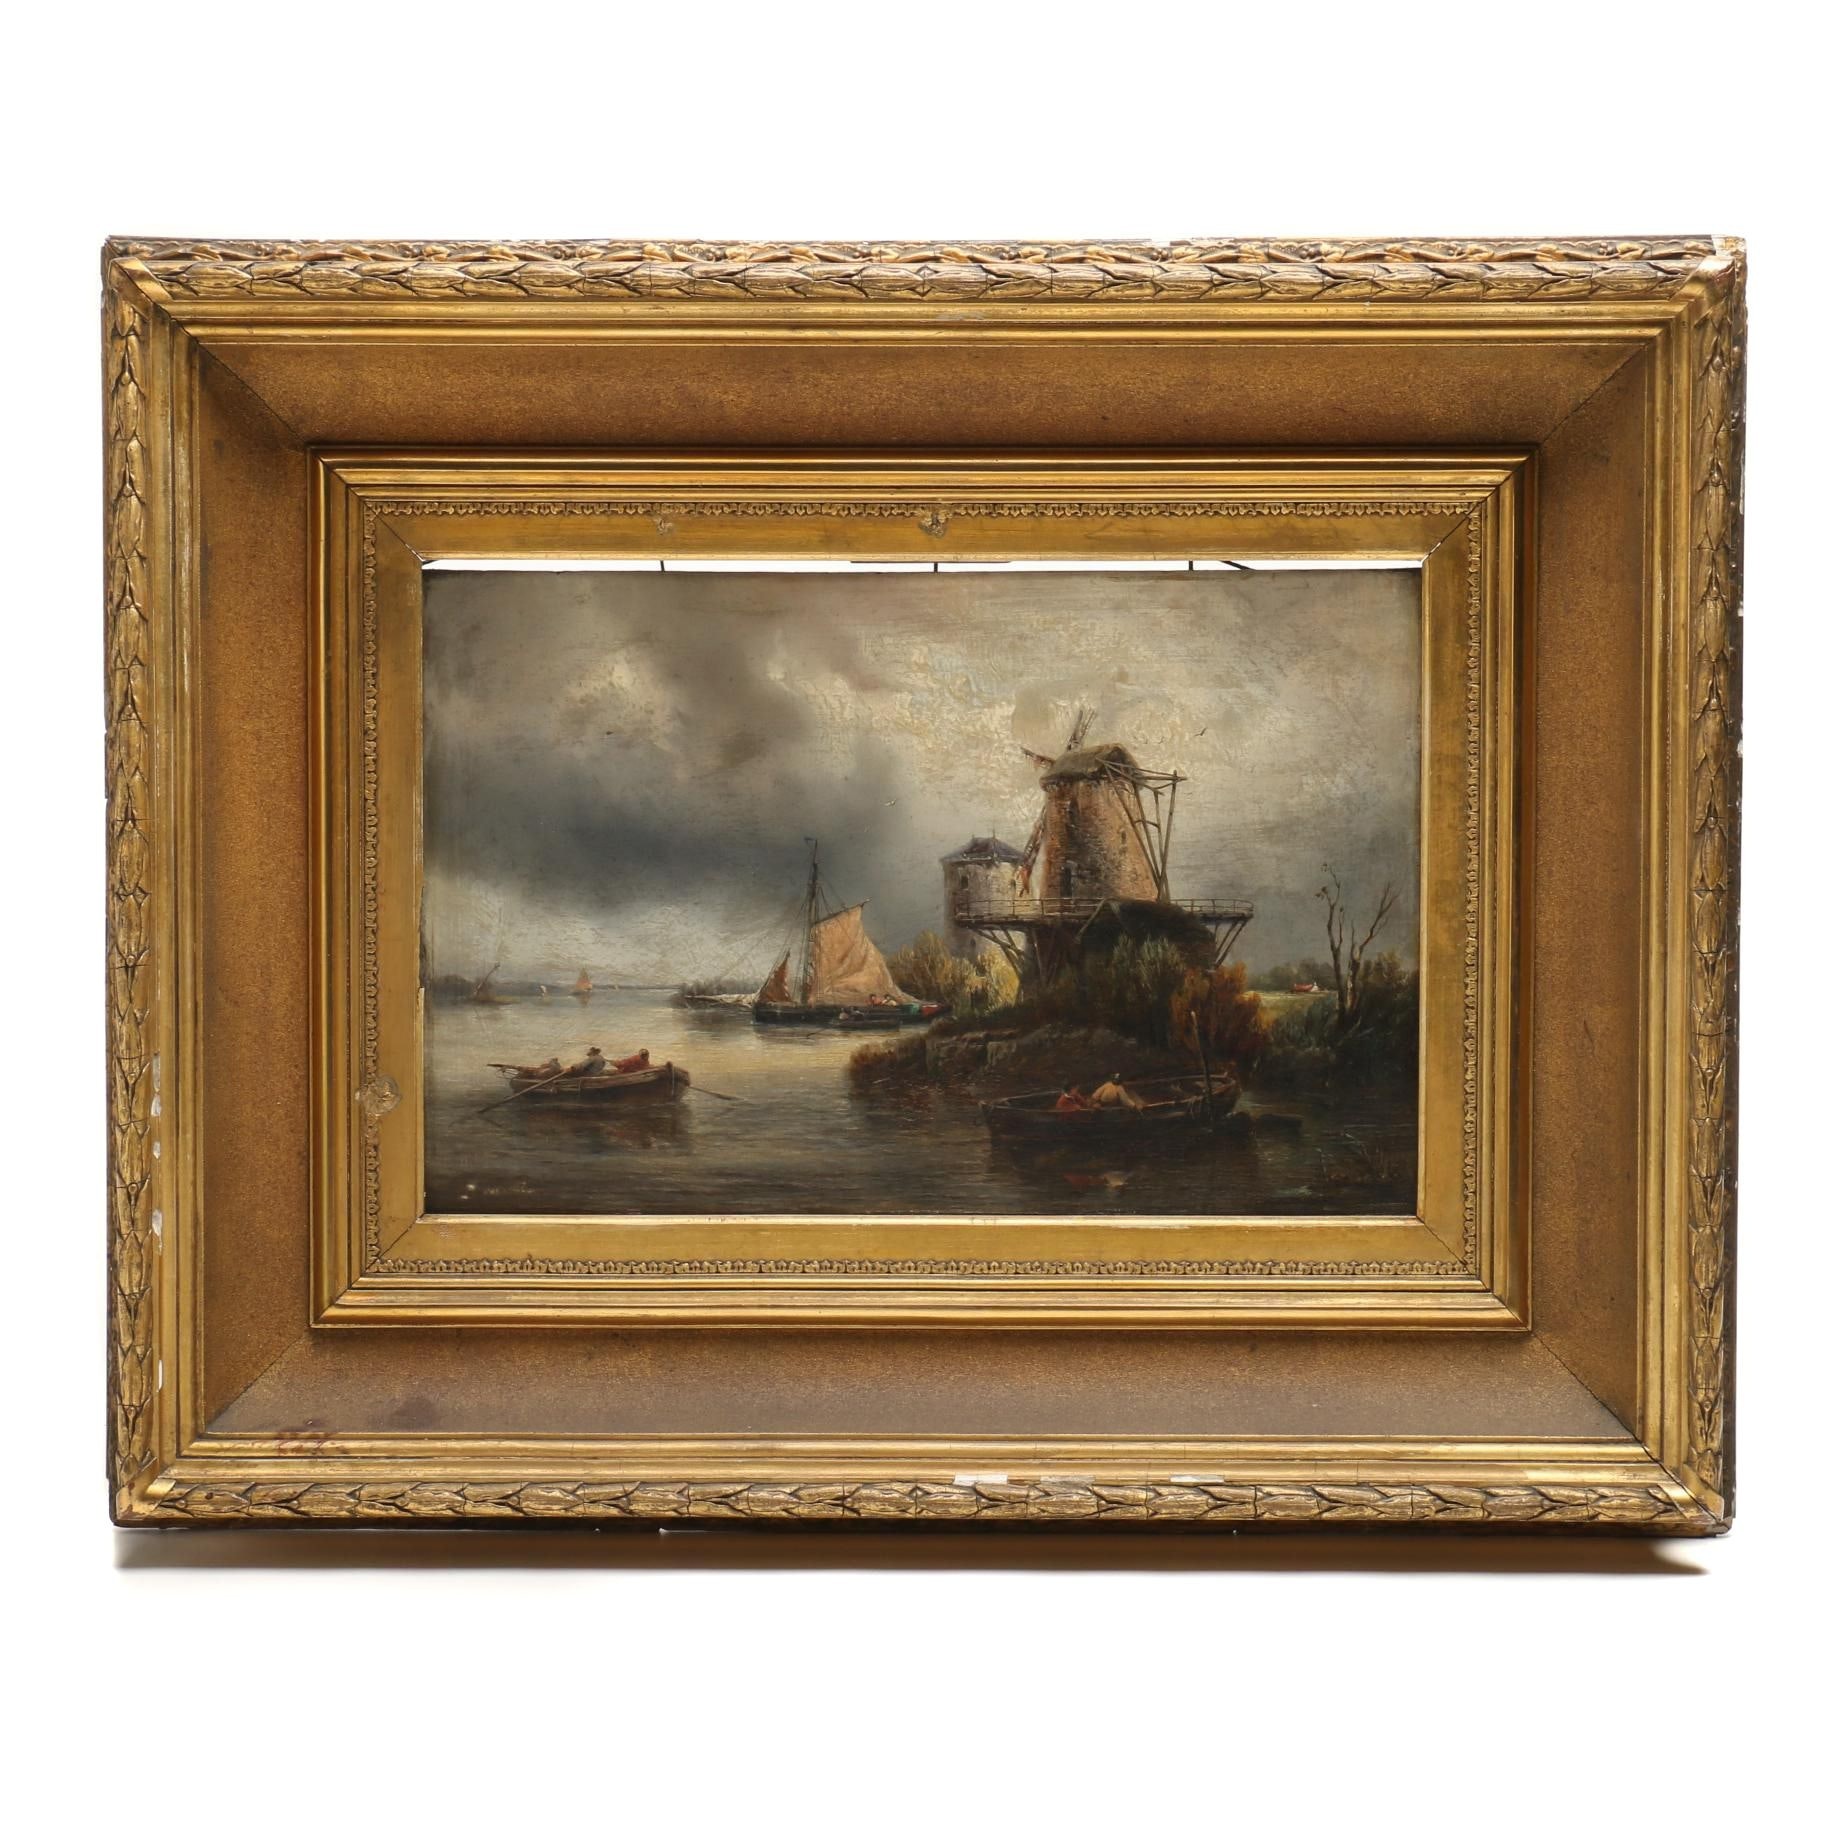 Late 19th Century Dutch Oil Painting of River Scene with Windmills